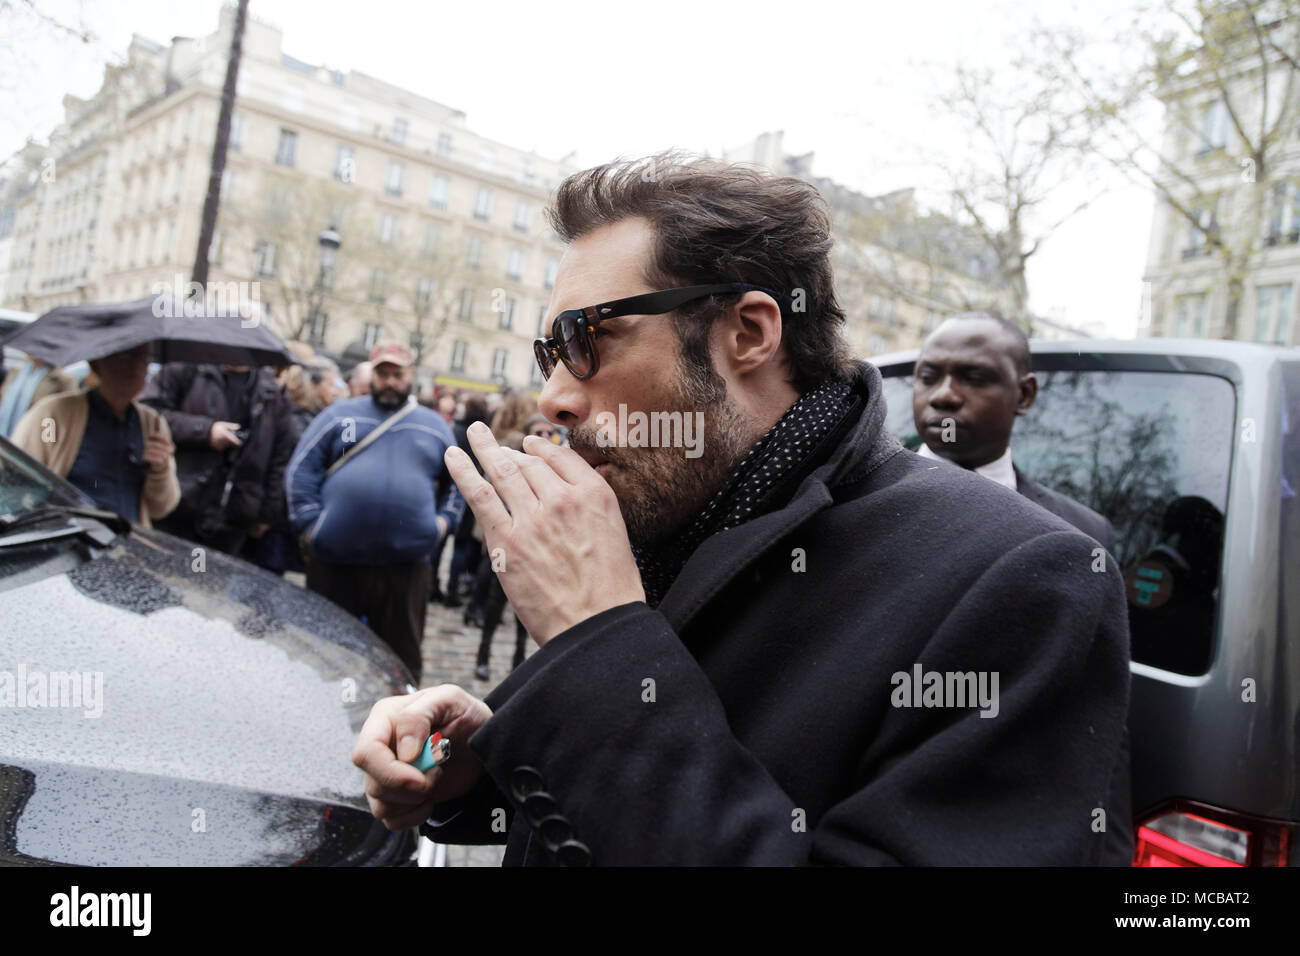 Paris, France. 12th Apr, 2018. Nicolas Bedos at the Jacques Higelin funeral at the Cirque d'Hiver on April 12, 2018 in Paris, France. - Stock Image